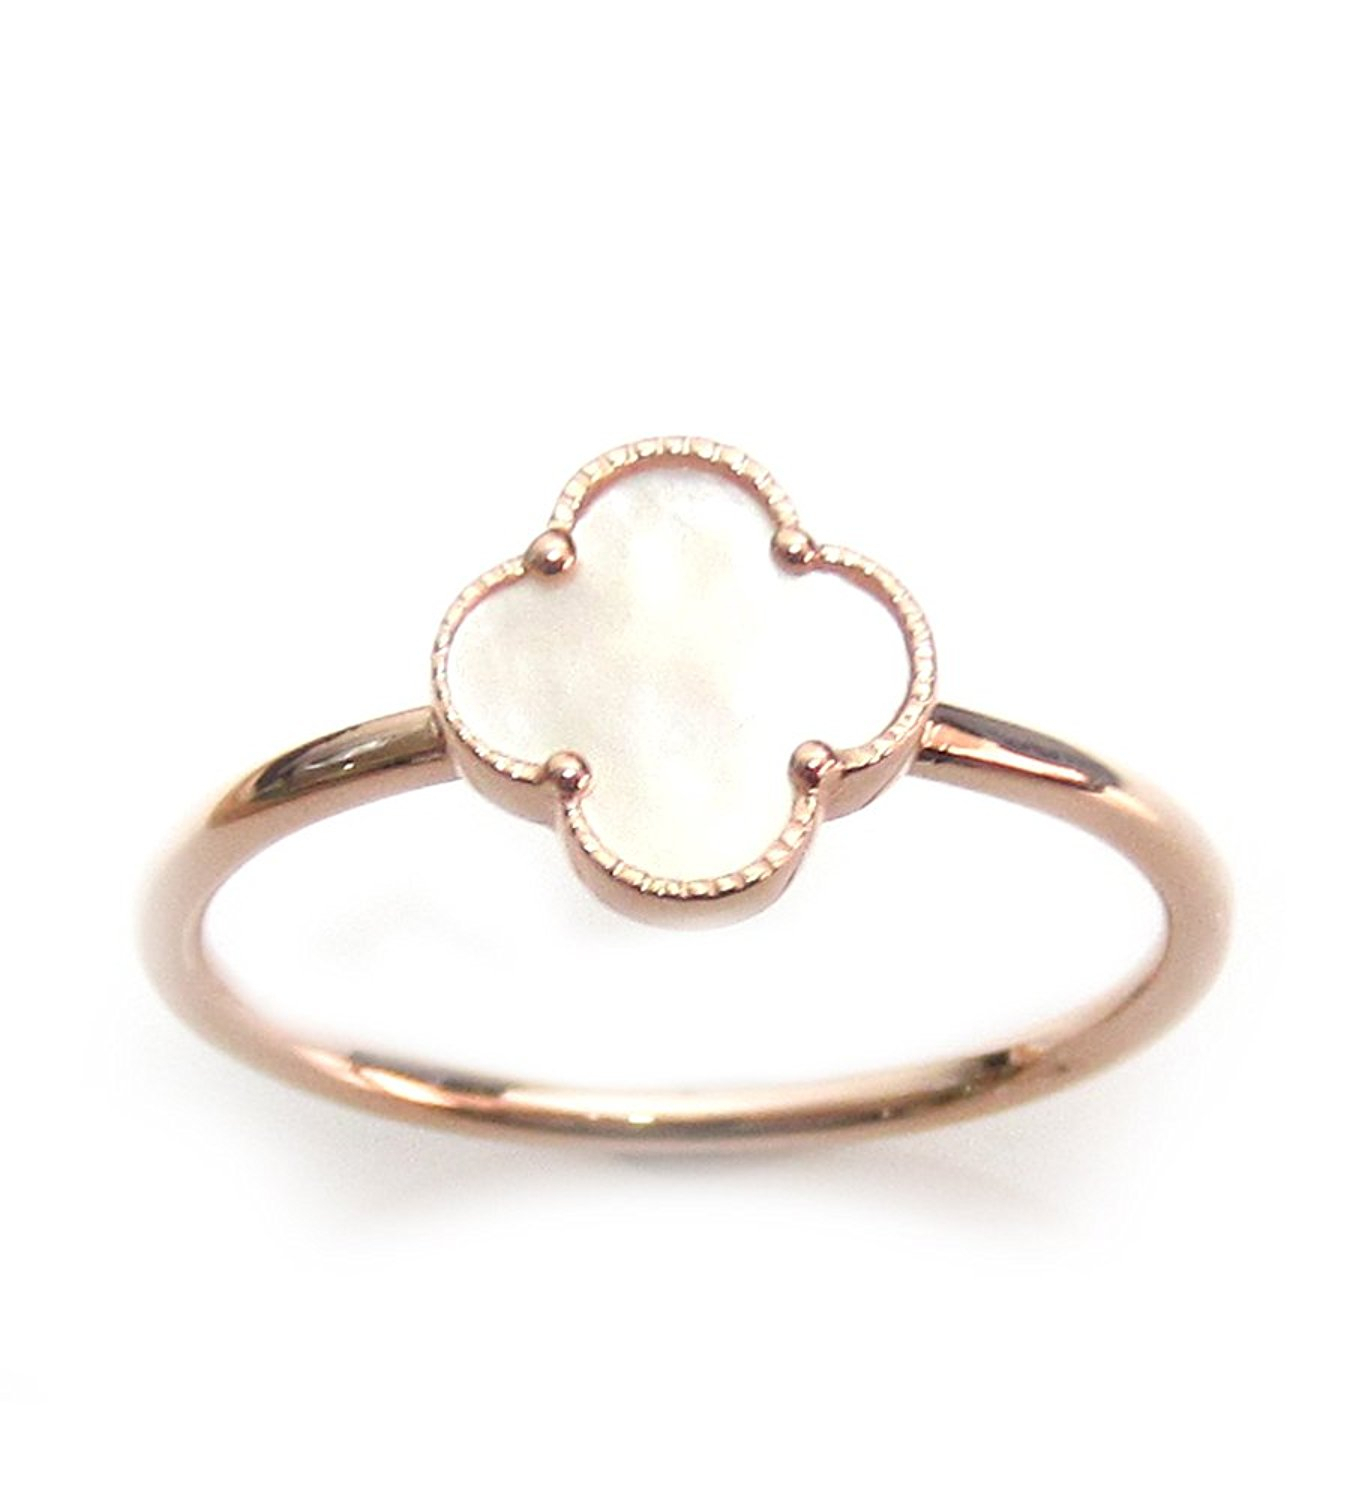 Cheap 4 Clover Ring, Find 4 Clover Ring Deals On Line At Alibaba Regarding Most Up To Date Dangling Four Leaf Clover Rings (View 5 of 25)